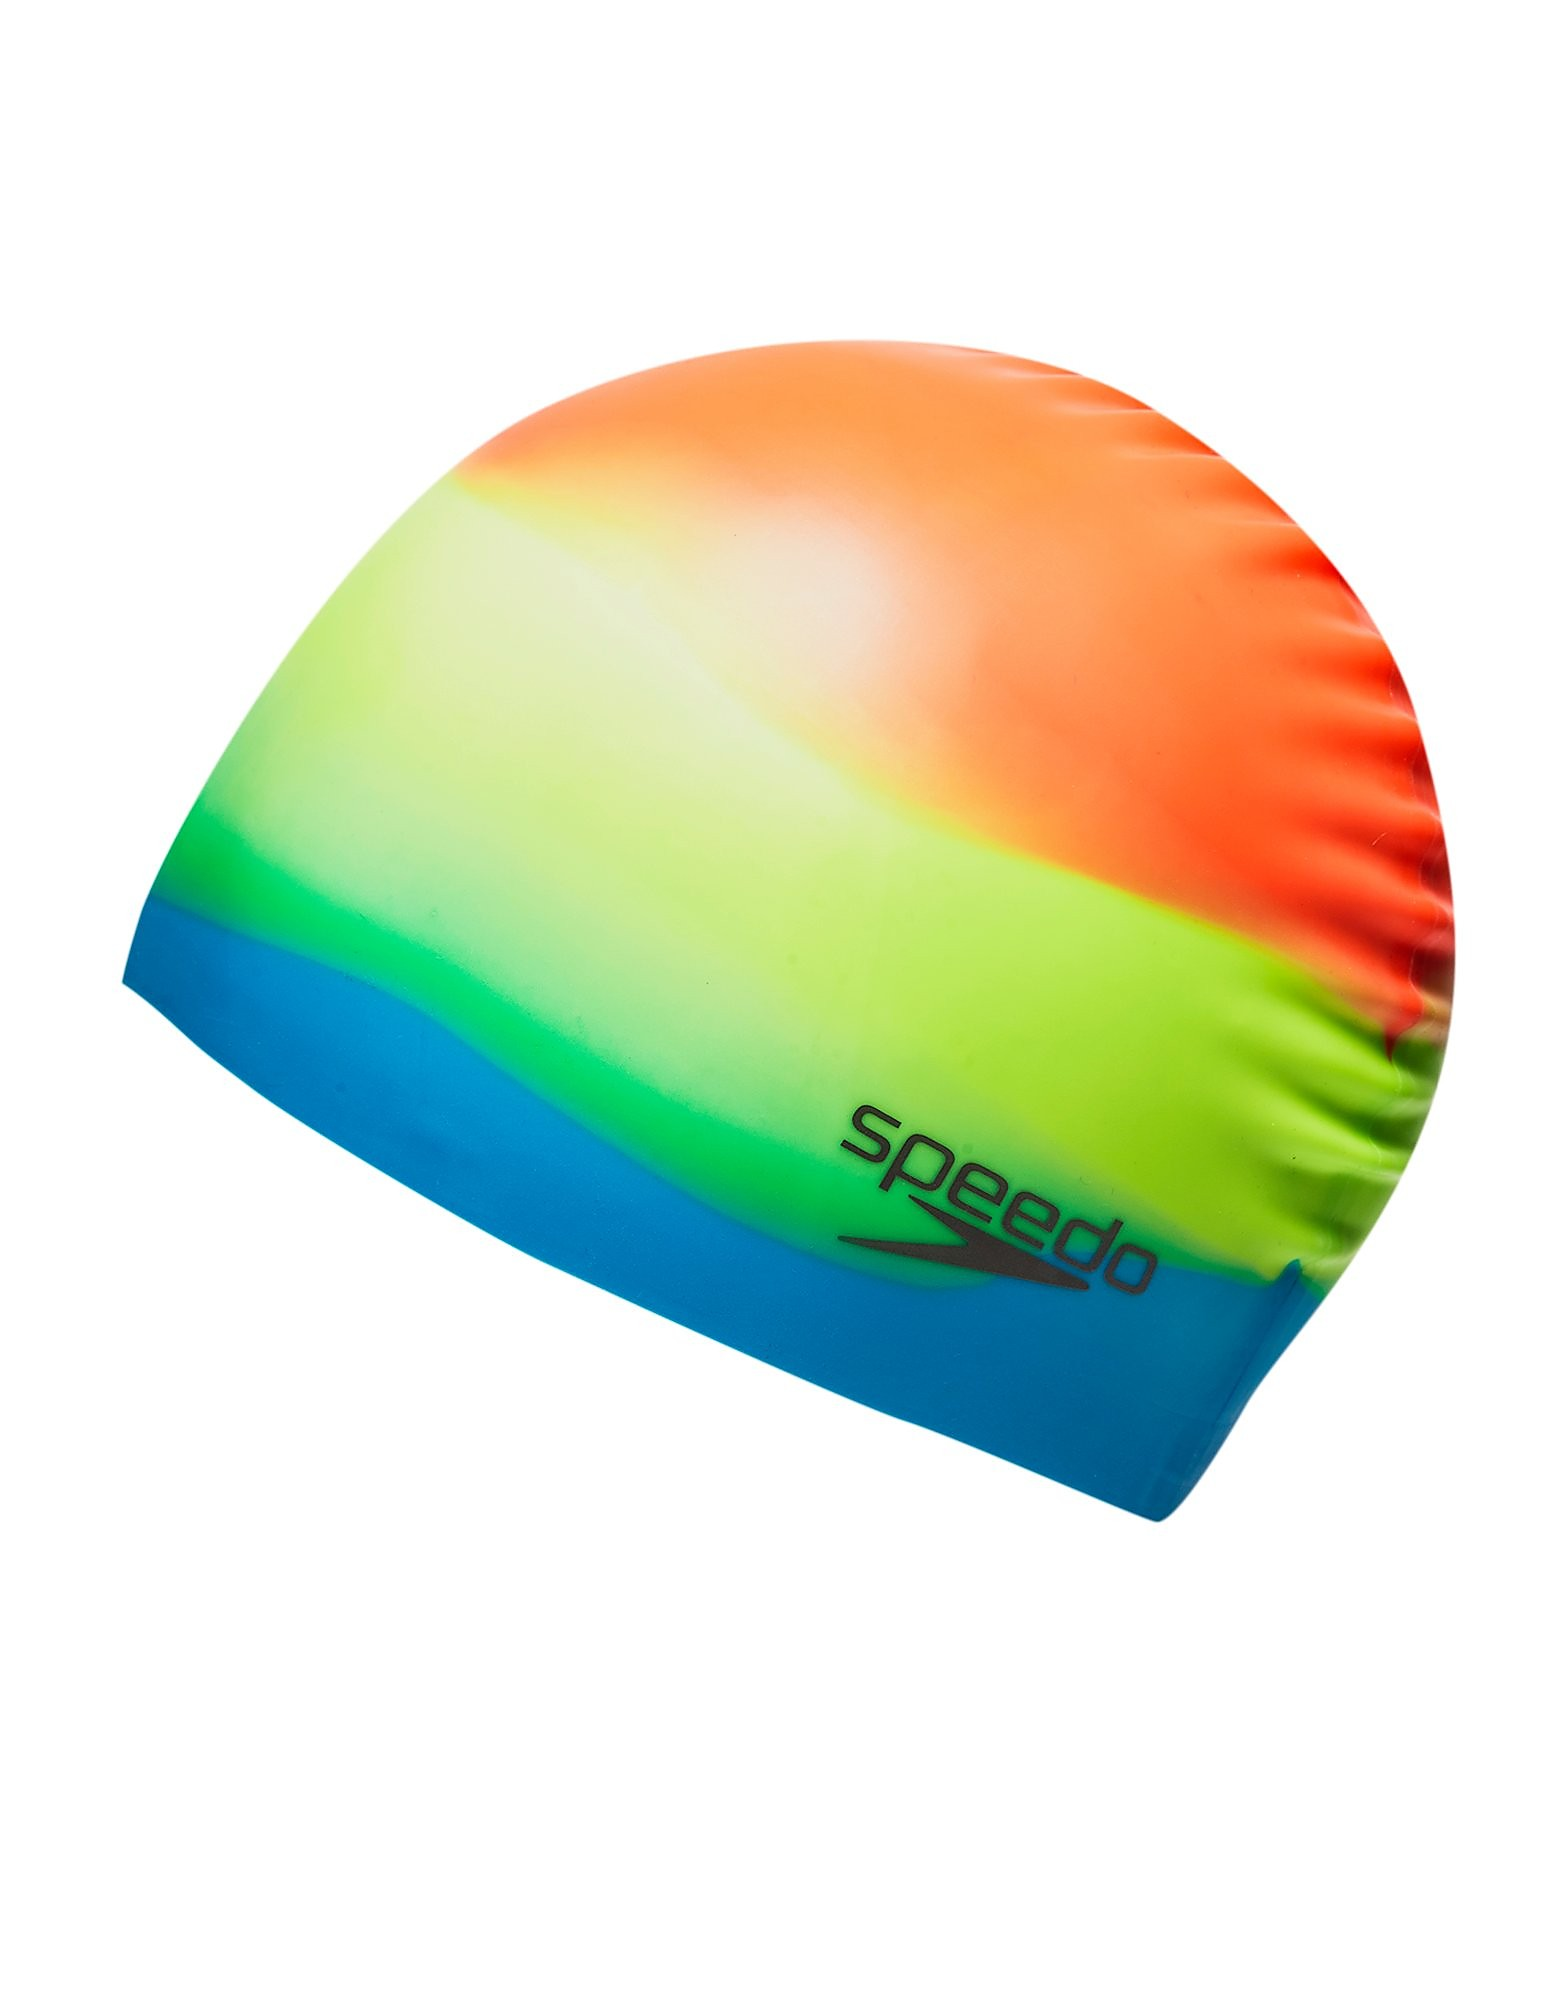 Speedo Multi-Coloured Silicone Cap